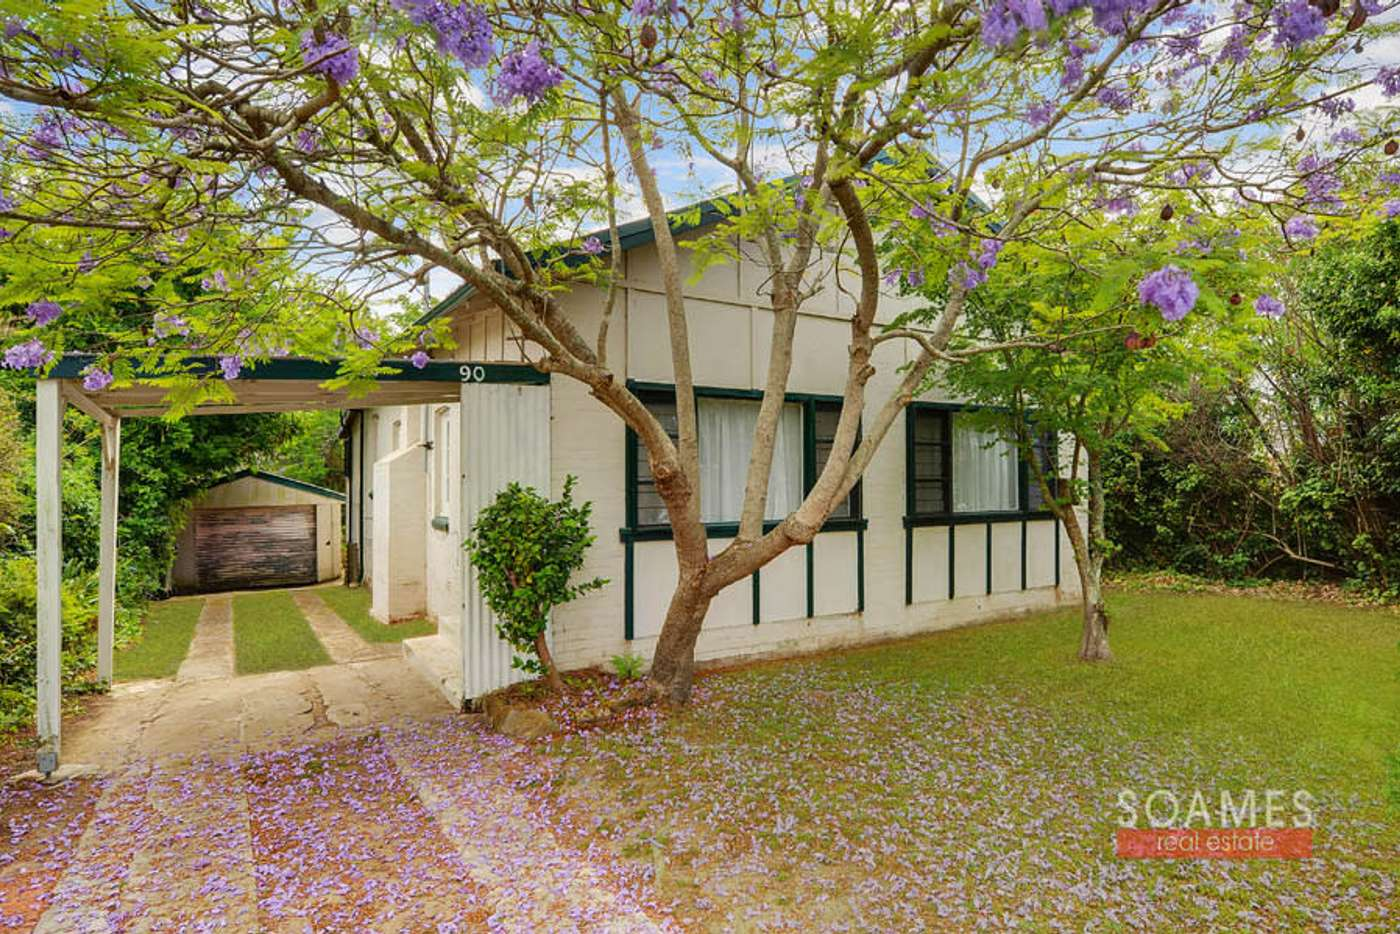 Main view of Homely house listing, 90 Berowra Waters Road, Berowra NSW 2081